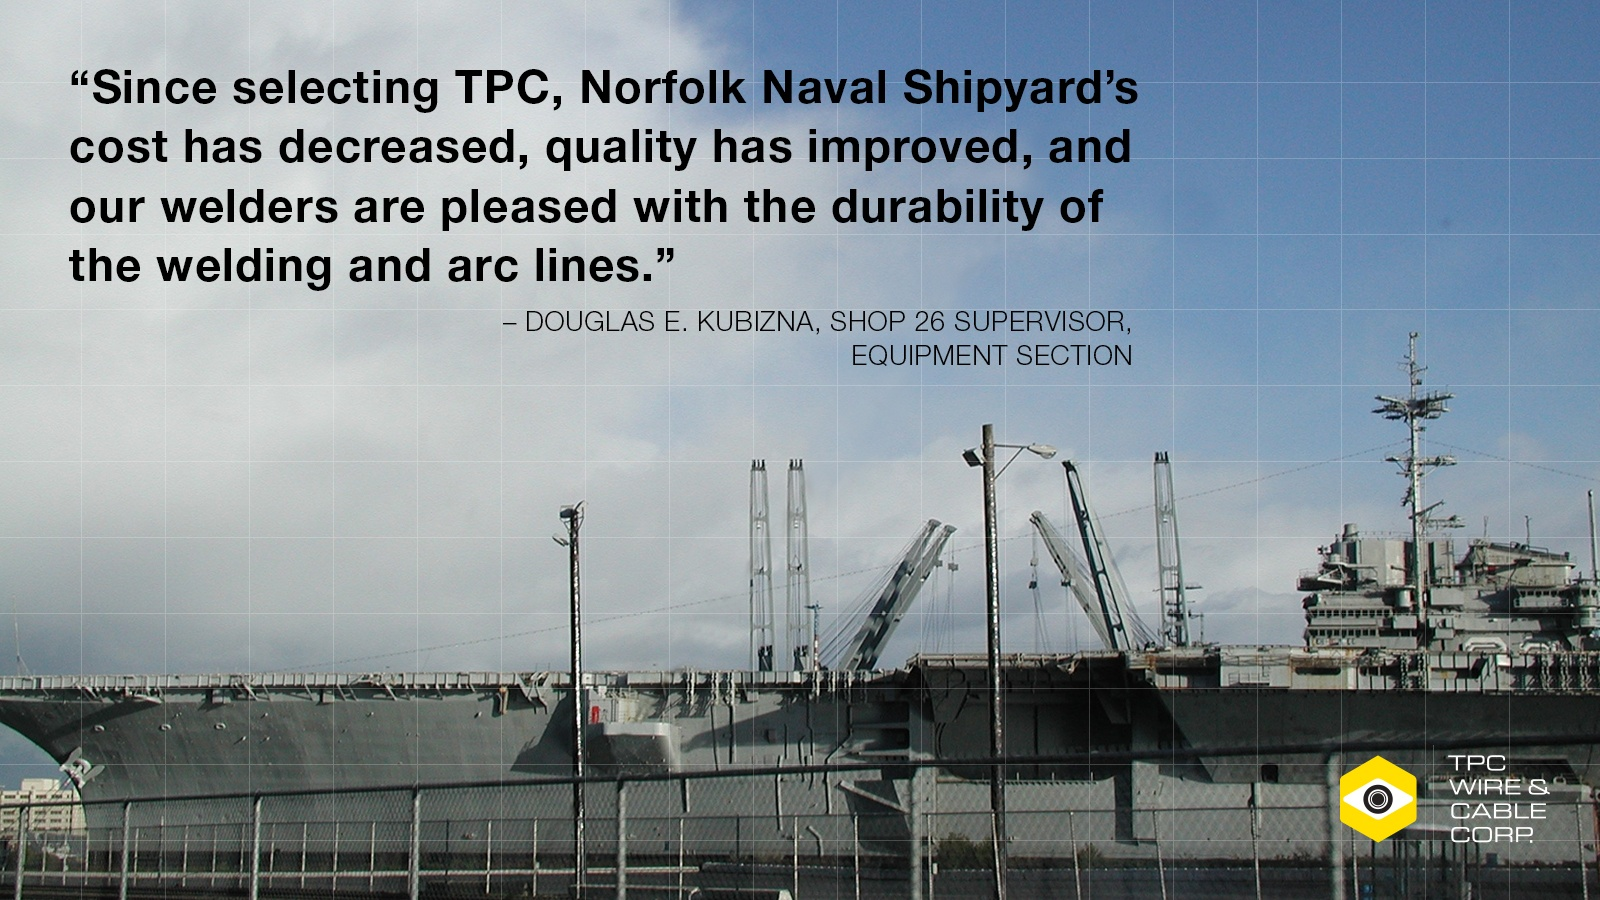 The Top 3 Ways TPC Wire & Cable is Serving Shipyards